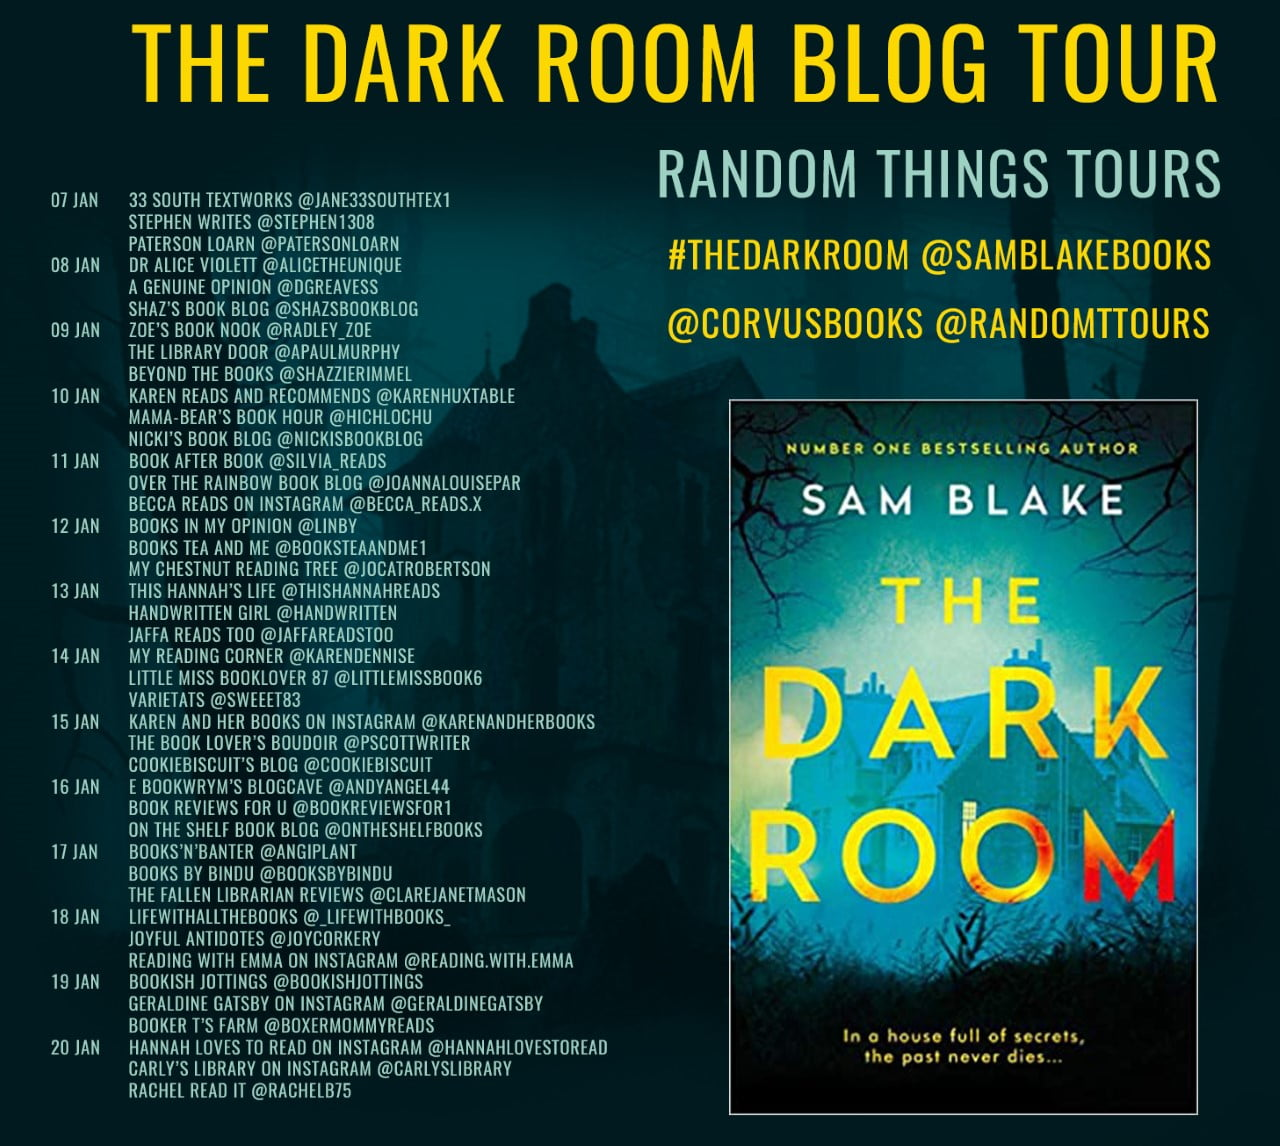 The Dark Room – Sam Blake